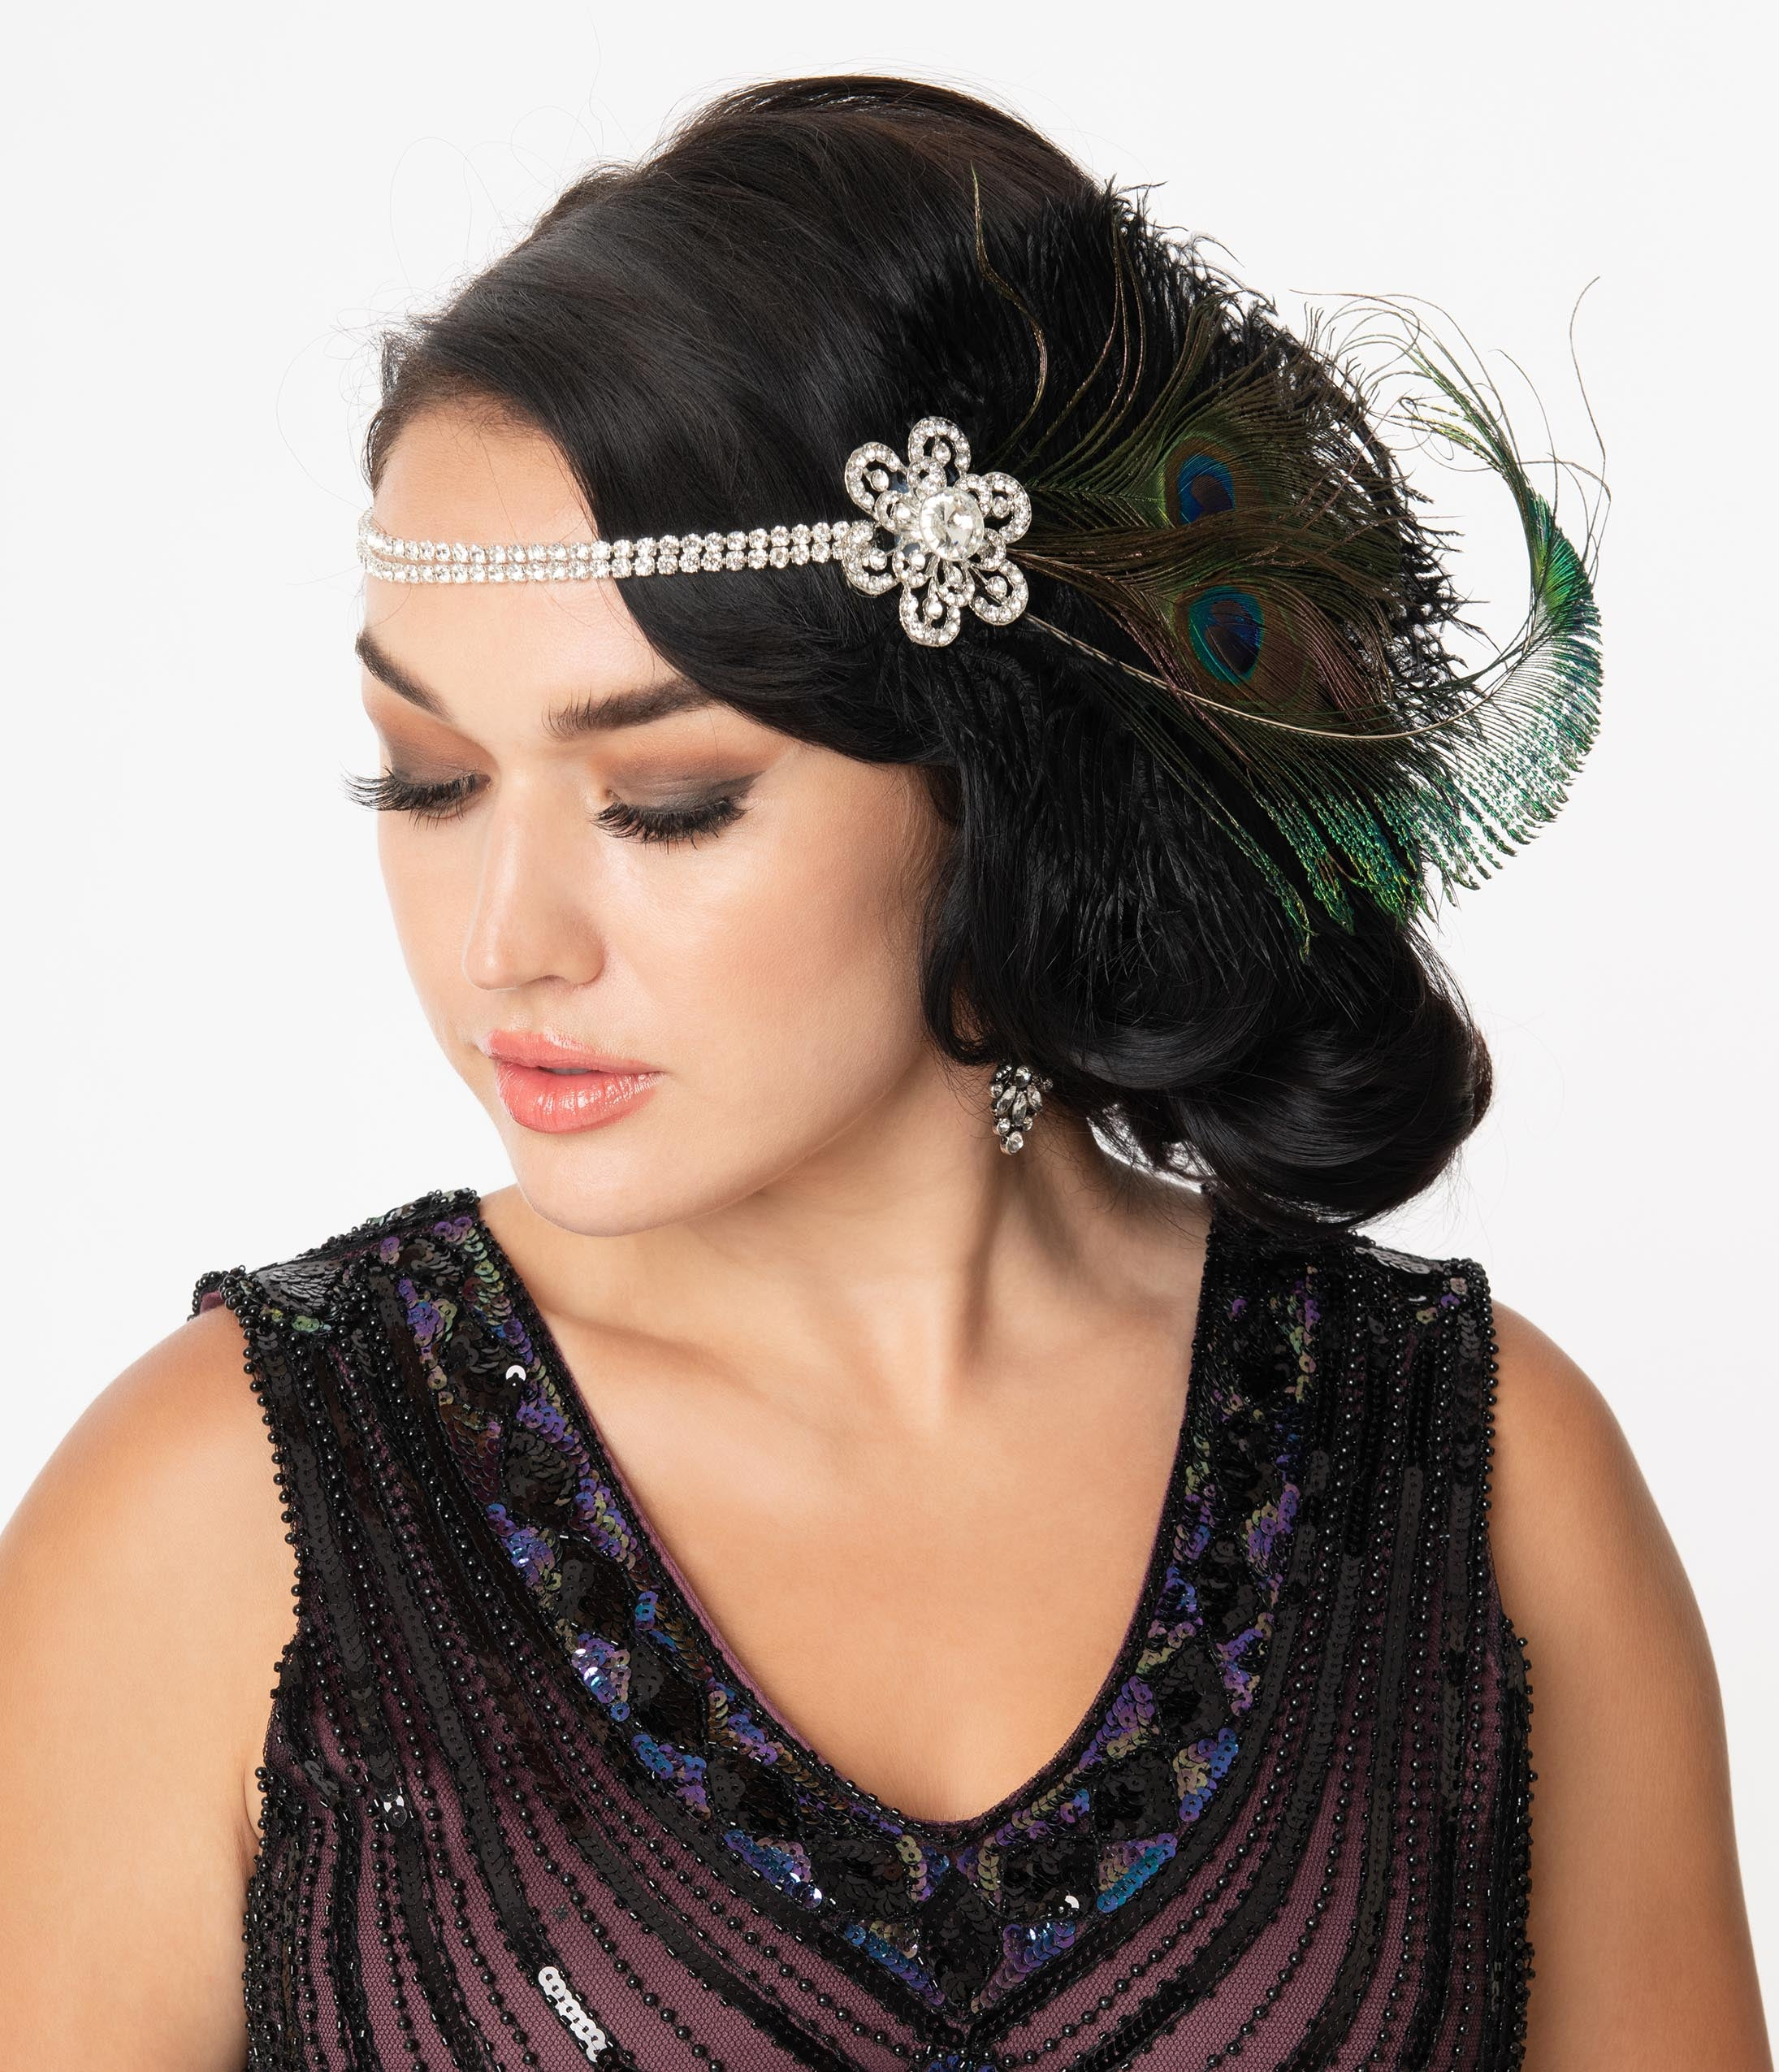 1920s Fashion & Clothing | Roaring 20s Attire Unique Vintage Dual Peacock Feather  Rhinestone Floral Flapper Headband $36.00 AT vintagedancer.com